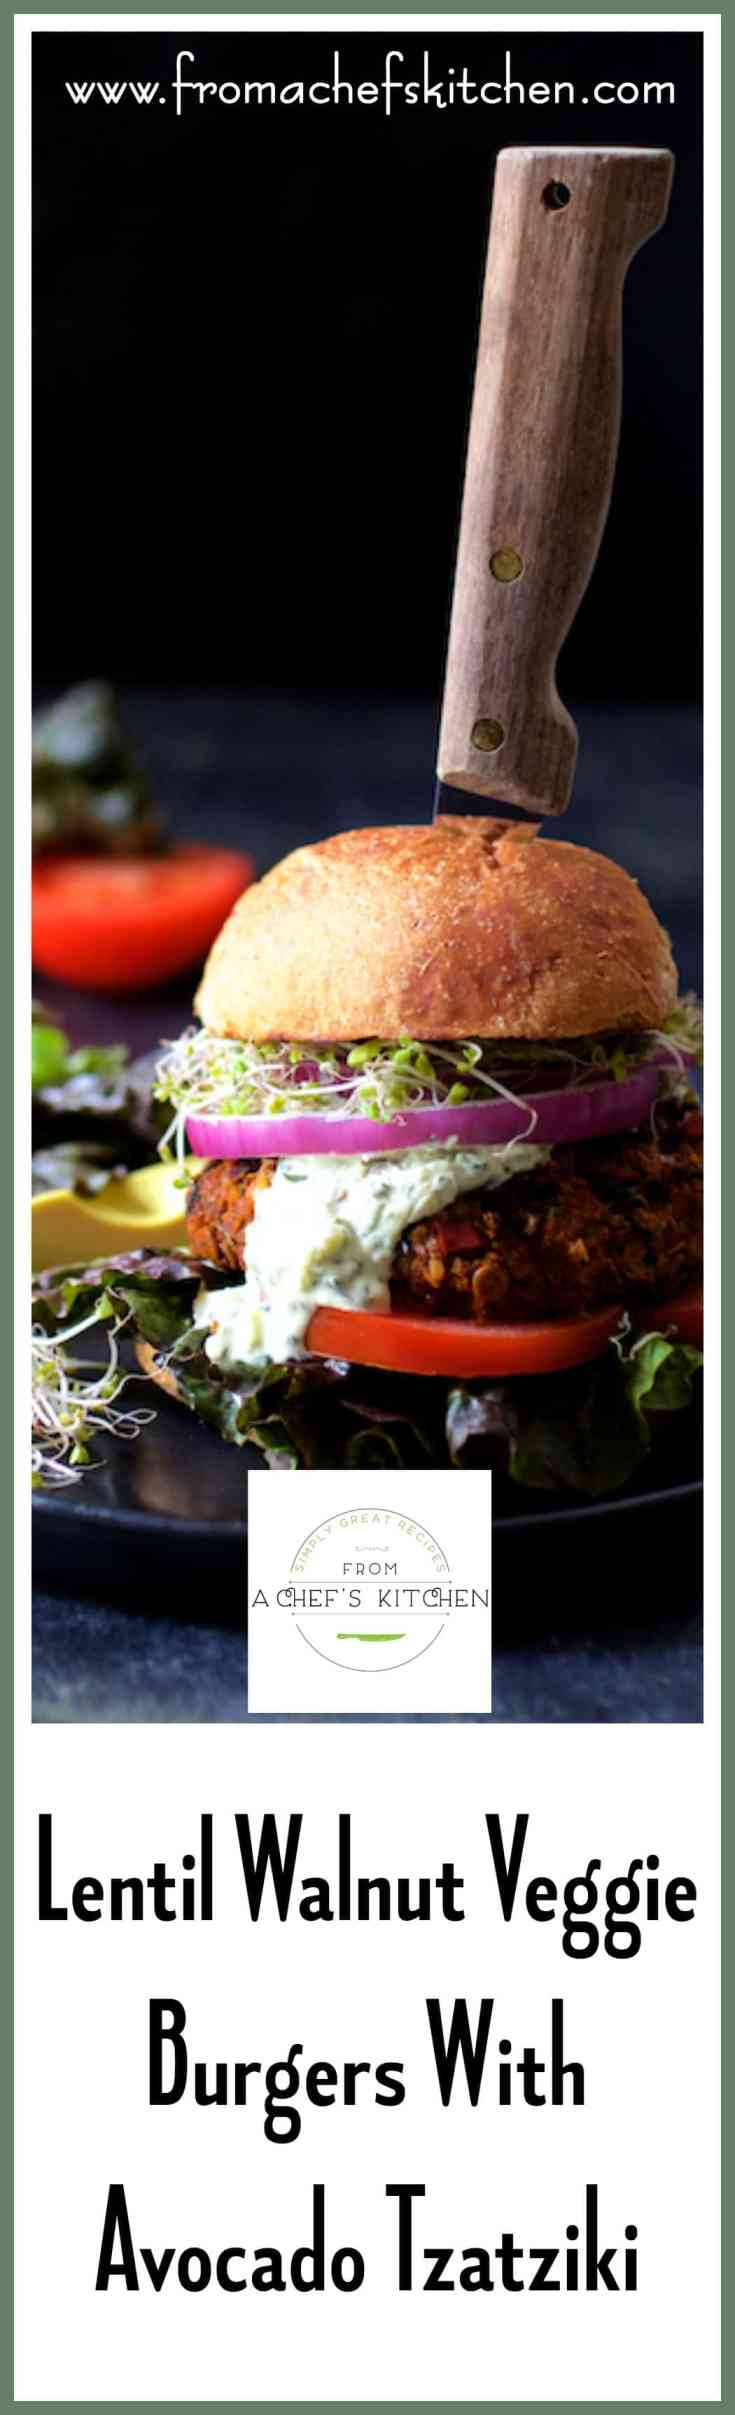 Lentil Walnut Veggie Burgers with Avocado Tzatziki Sauce are hearty enough for a carnivore!  You may even need a knife! #lentil #veggieburger #vegetarian #avocado #tzatziki